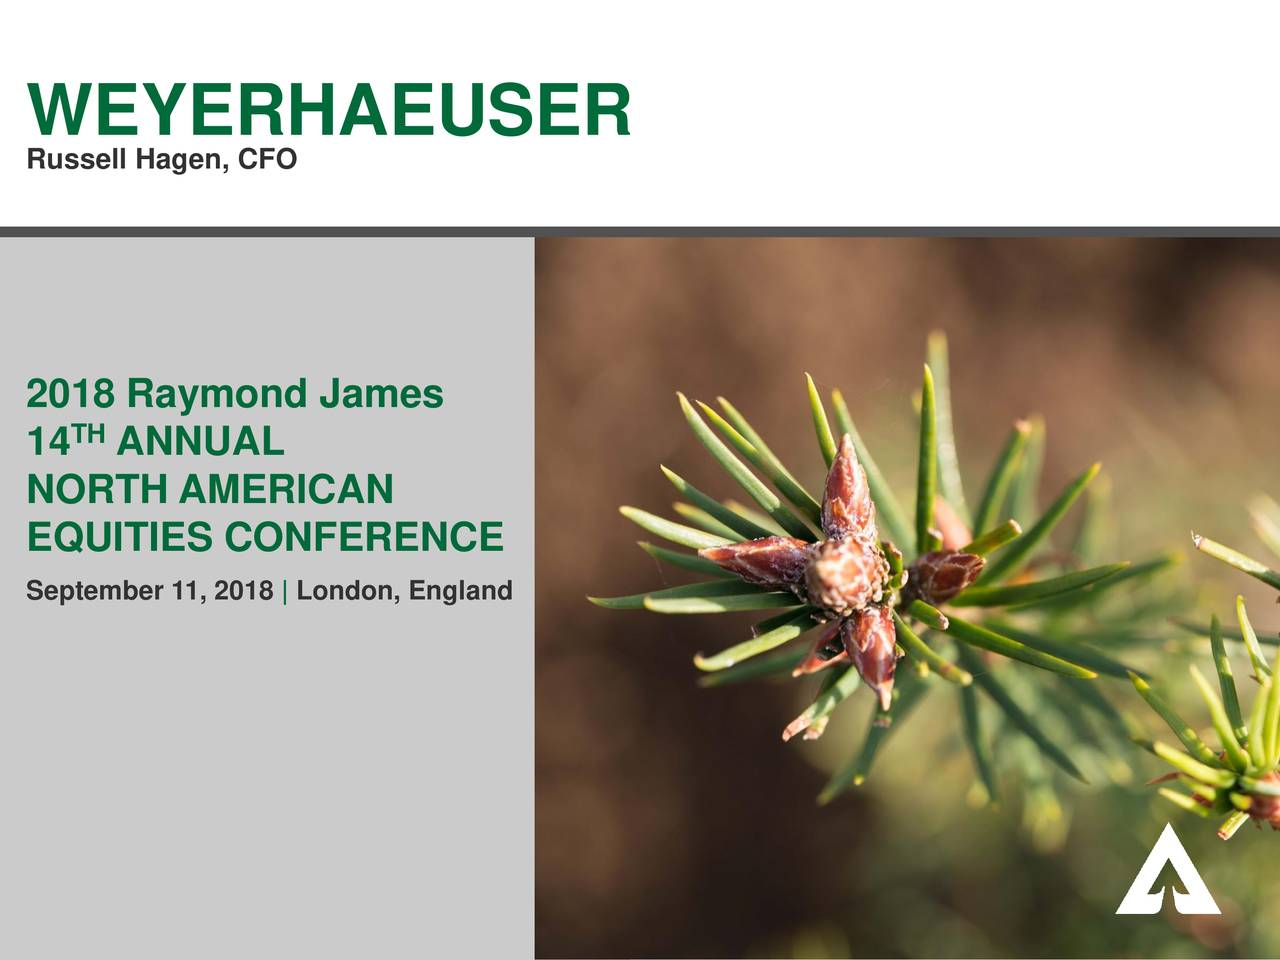 Weyerhaeuser (WY) Presents At Raymond James 14th Annual